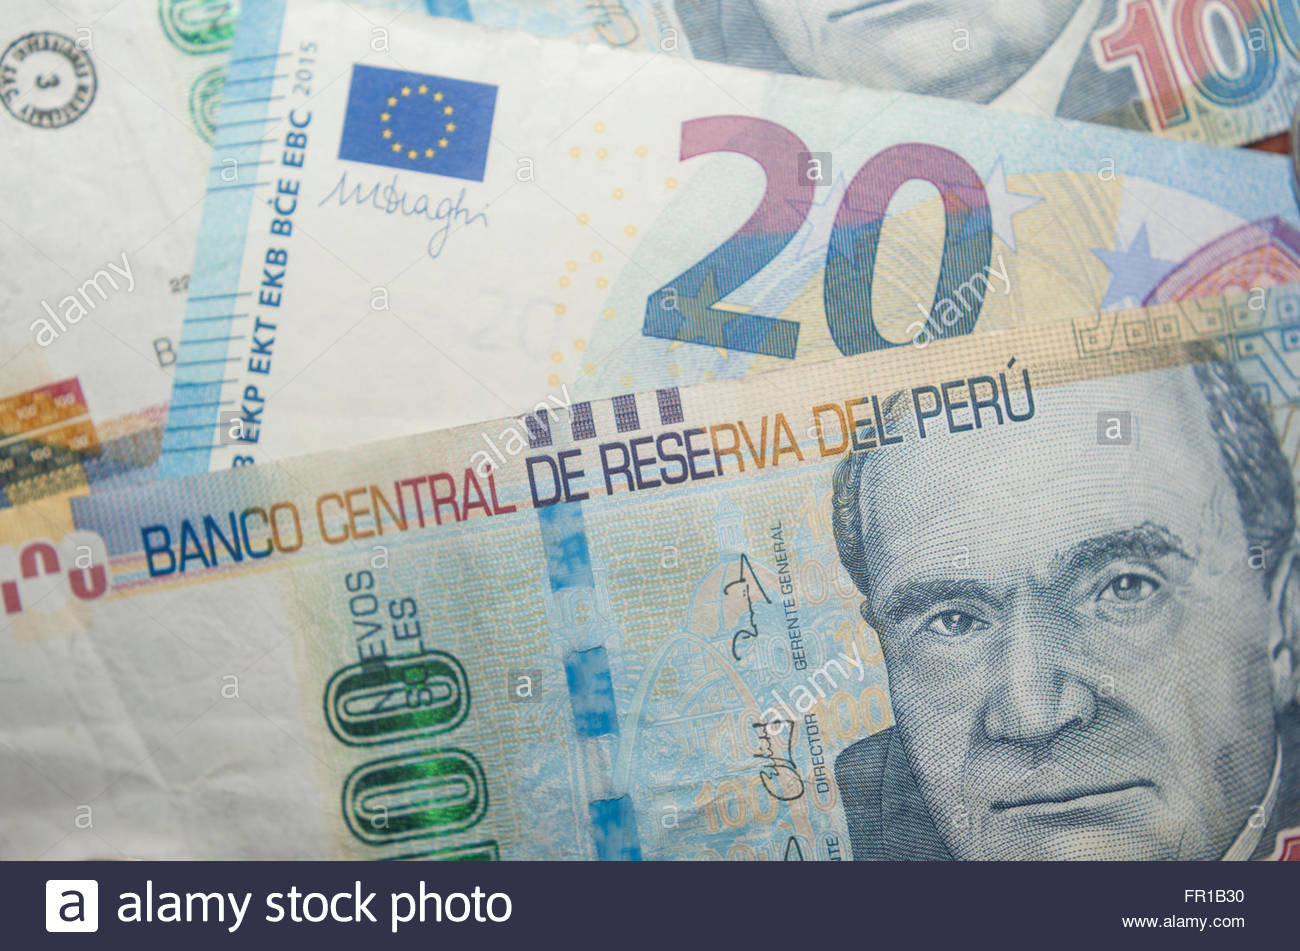 Peruvian Soles (Peru sol) and Euros currency - Stock Image